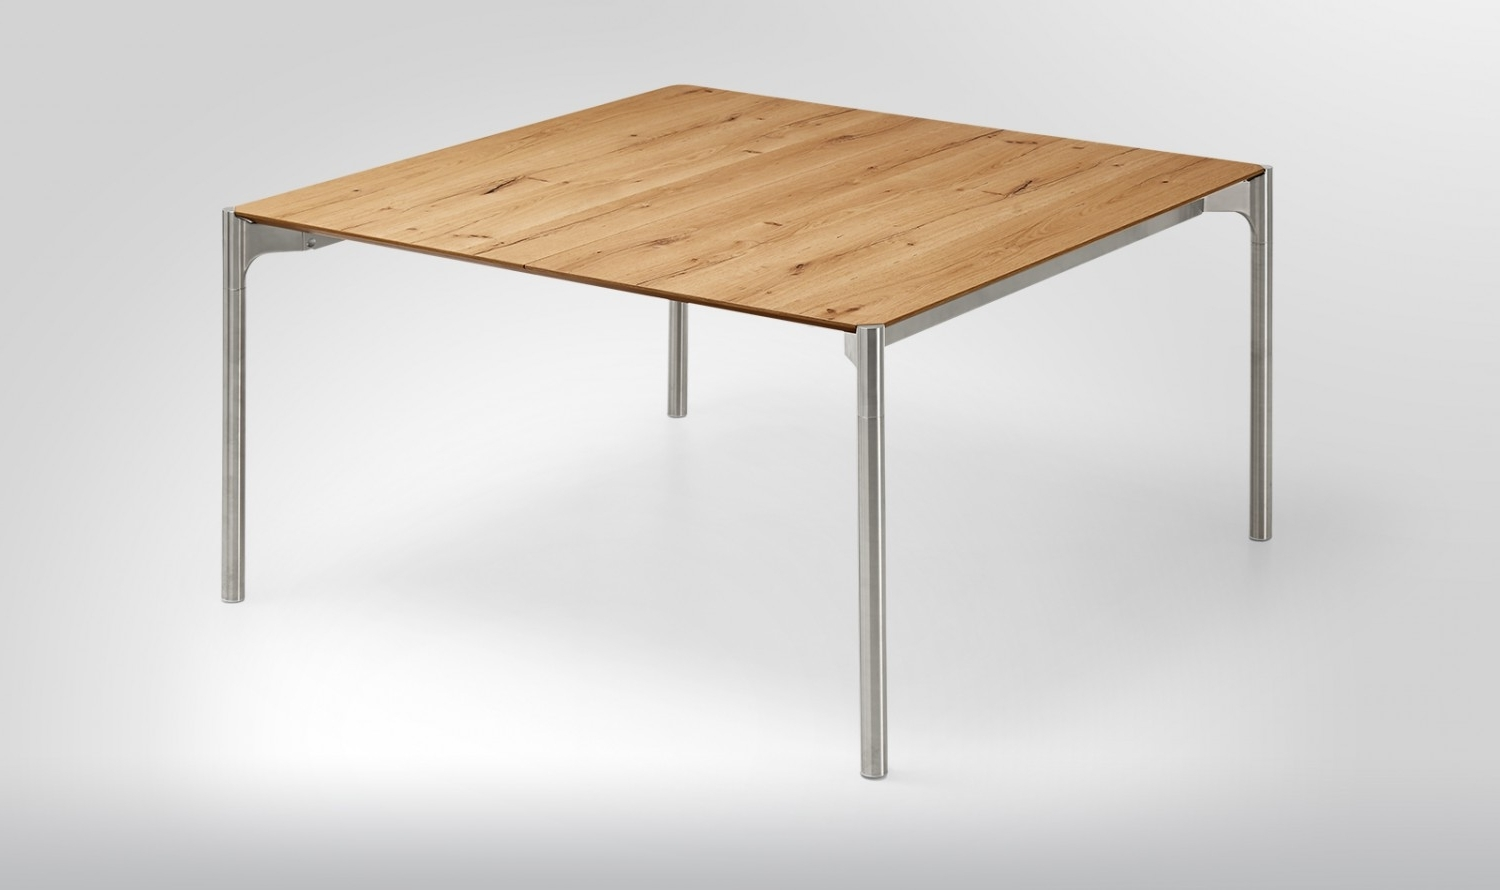 Newest Extendable Square Dining Tables Pertaining To Venjakob Et239 Mio Square Extendable Dining Table (View 18 of 25)